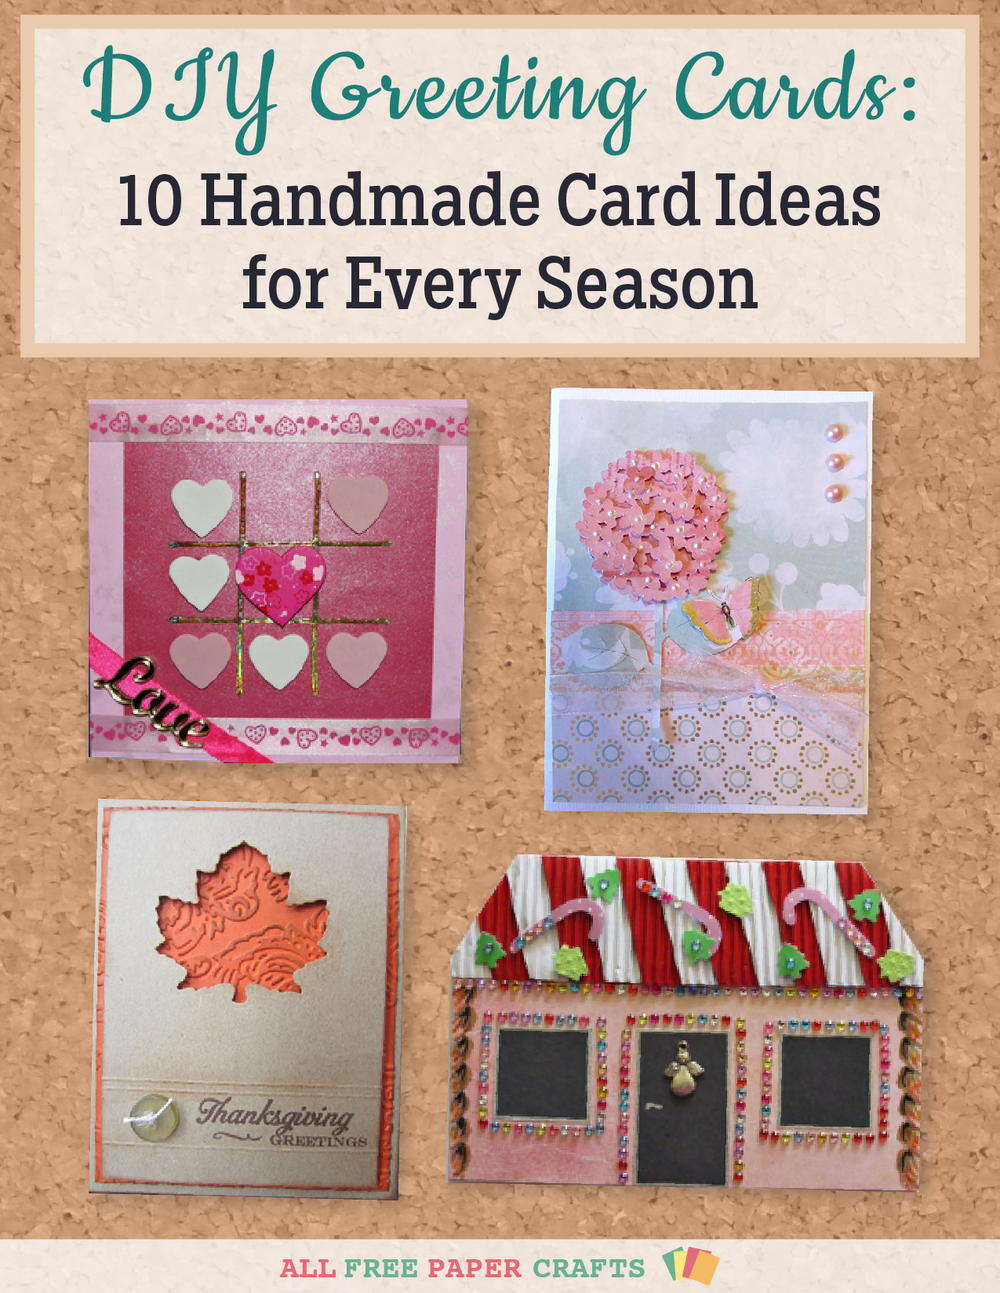 Diy greeting cards 10 handmade card ideas for every season free diy greeting cards 10 handmade card ideas for every season free ebook allfreepapercrafts m4hsunfo